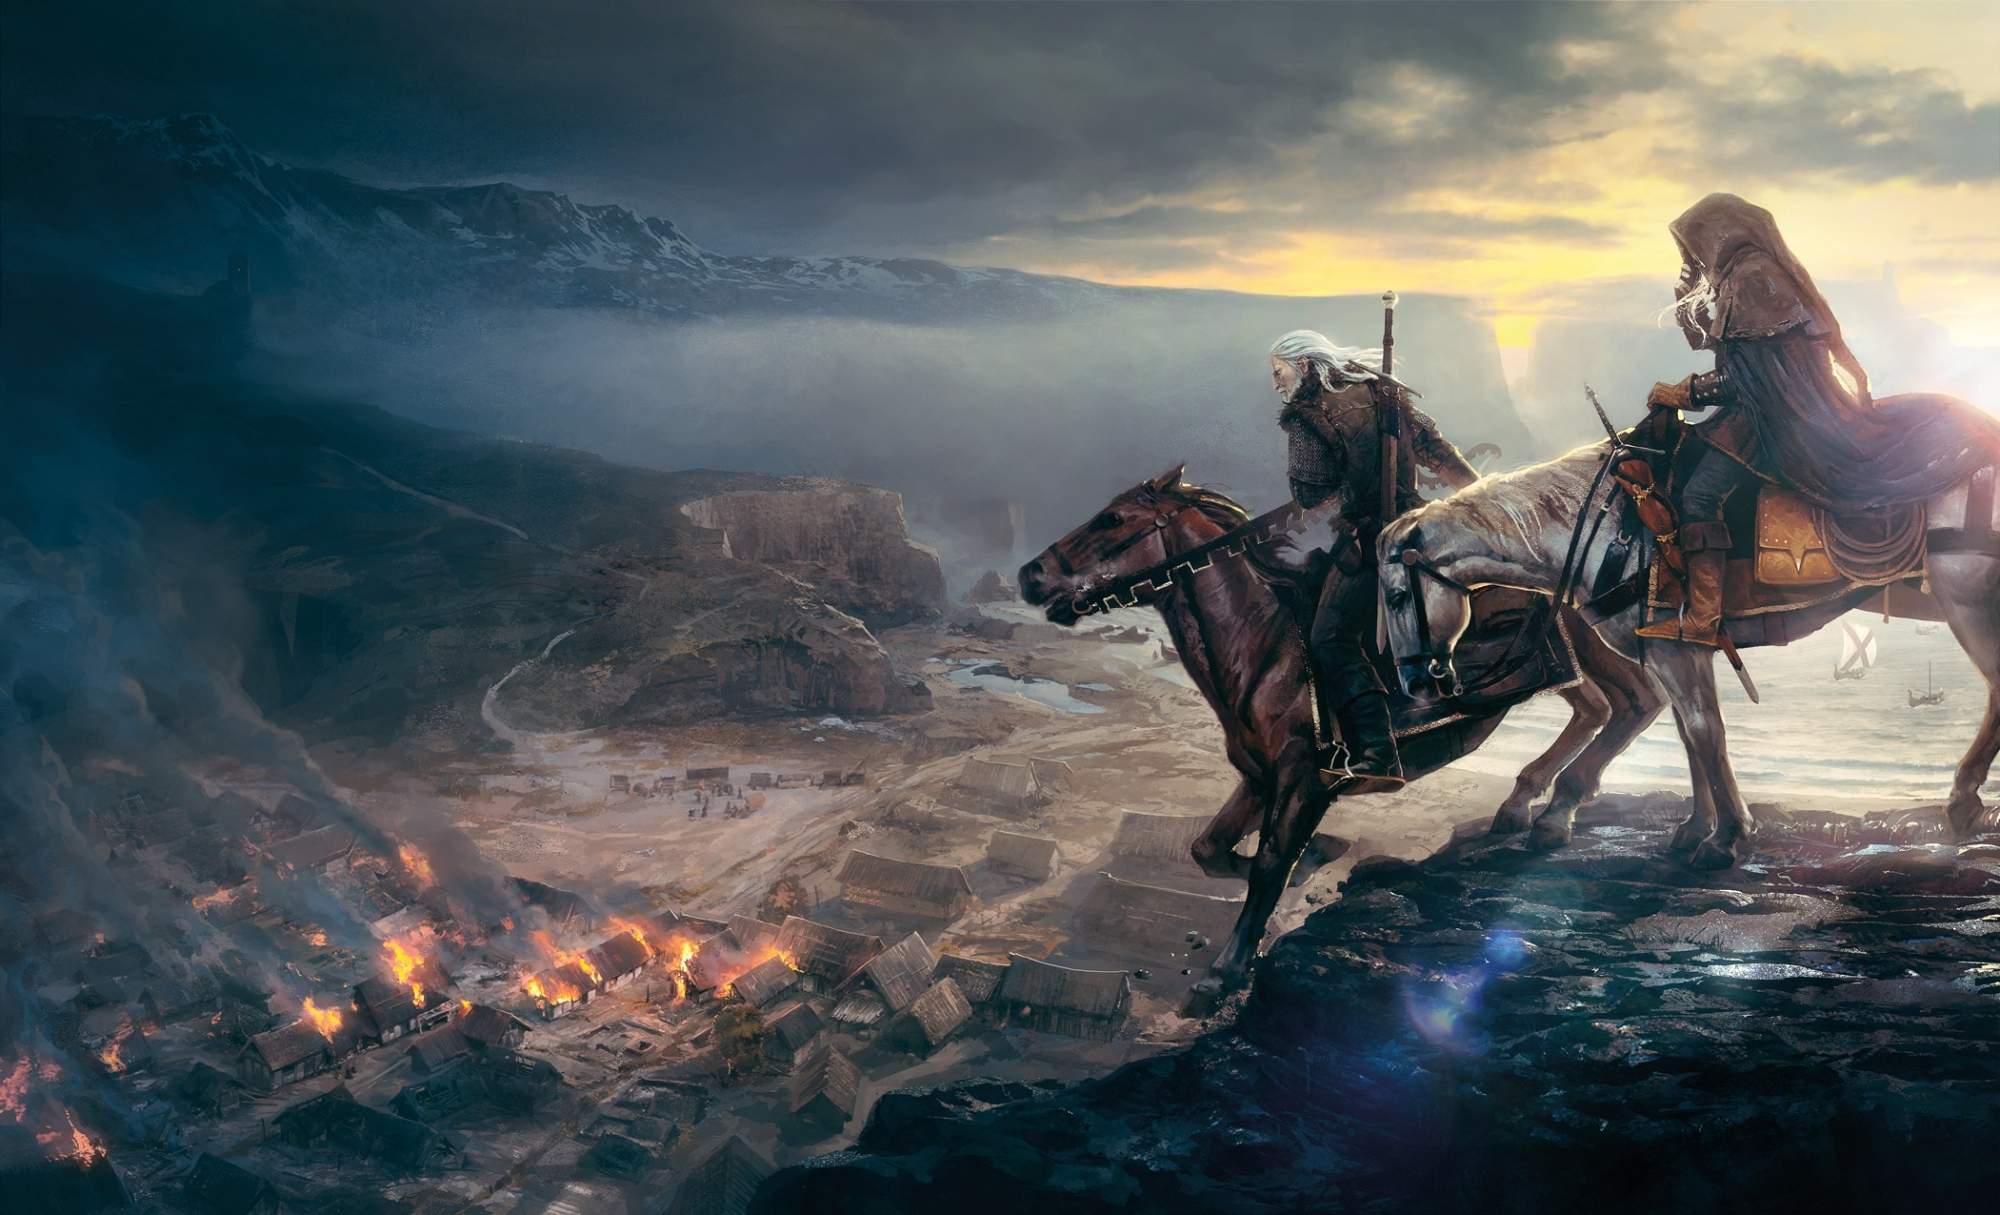 Witcher 3 Wallpaper Hd: 304 The Witcher 3: Wild Hunt HD Wallpapers